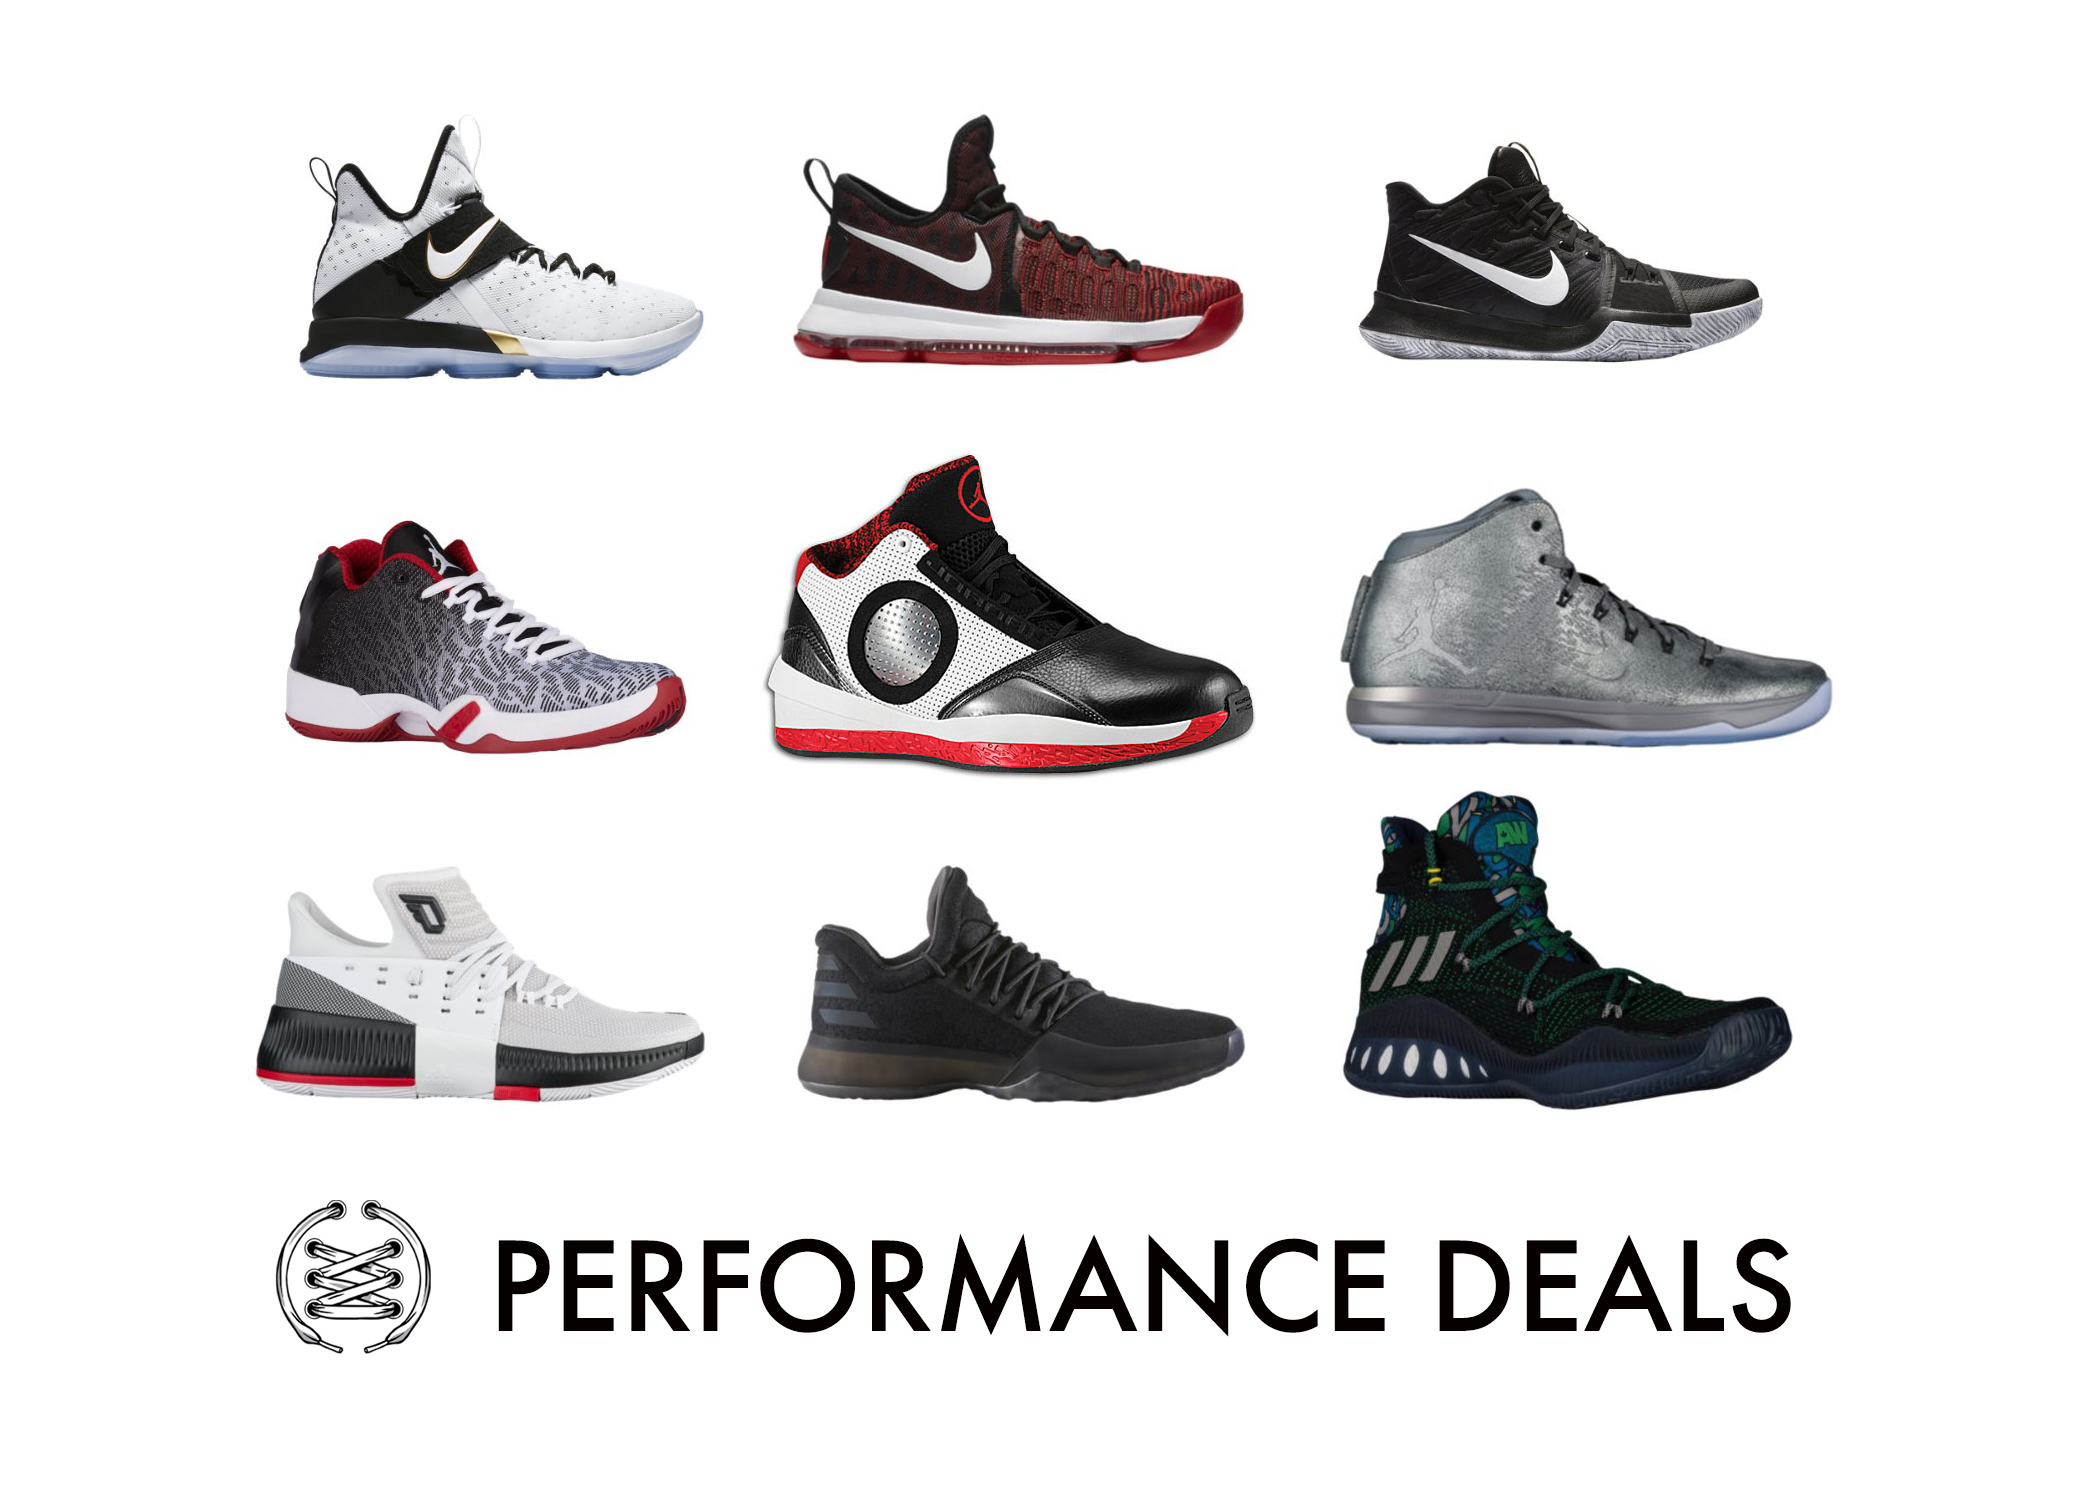 PERFORMANCE DEALS 20 OFF FOOT LOCKER